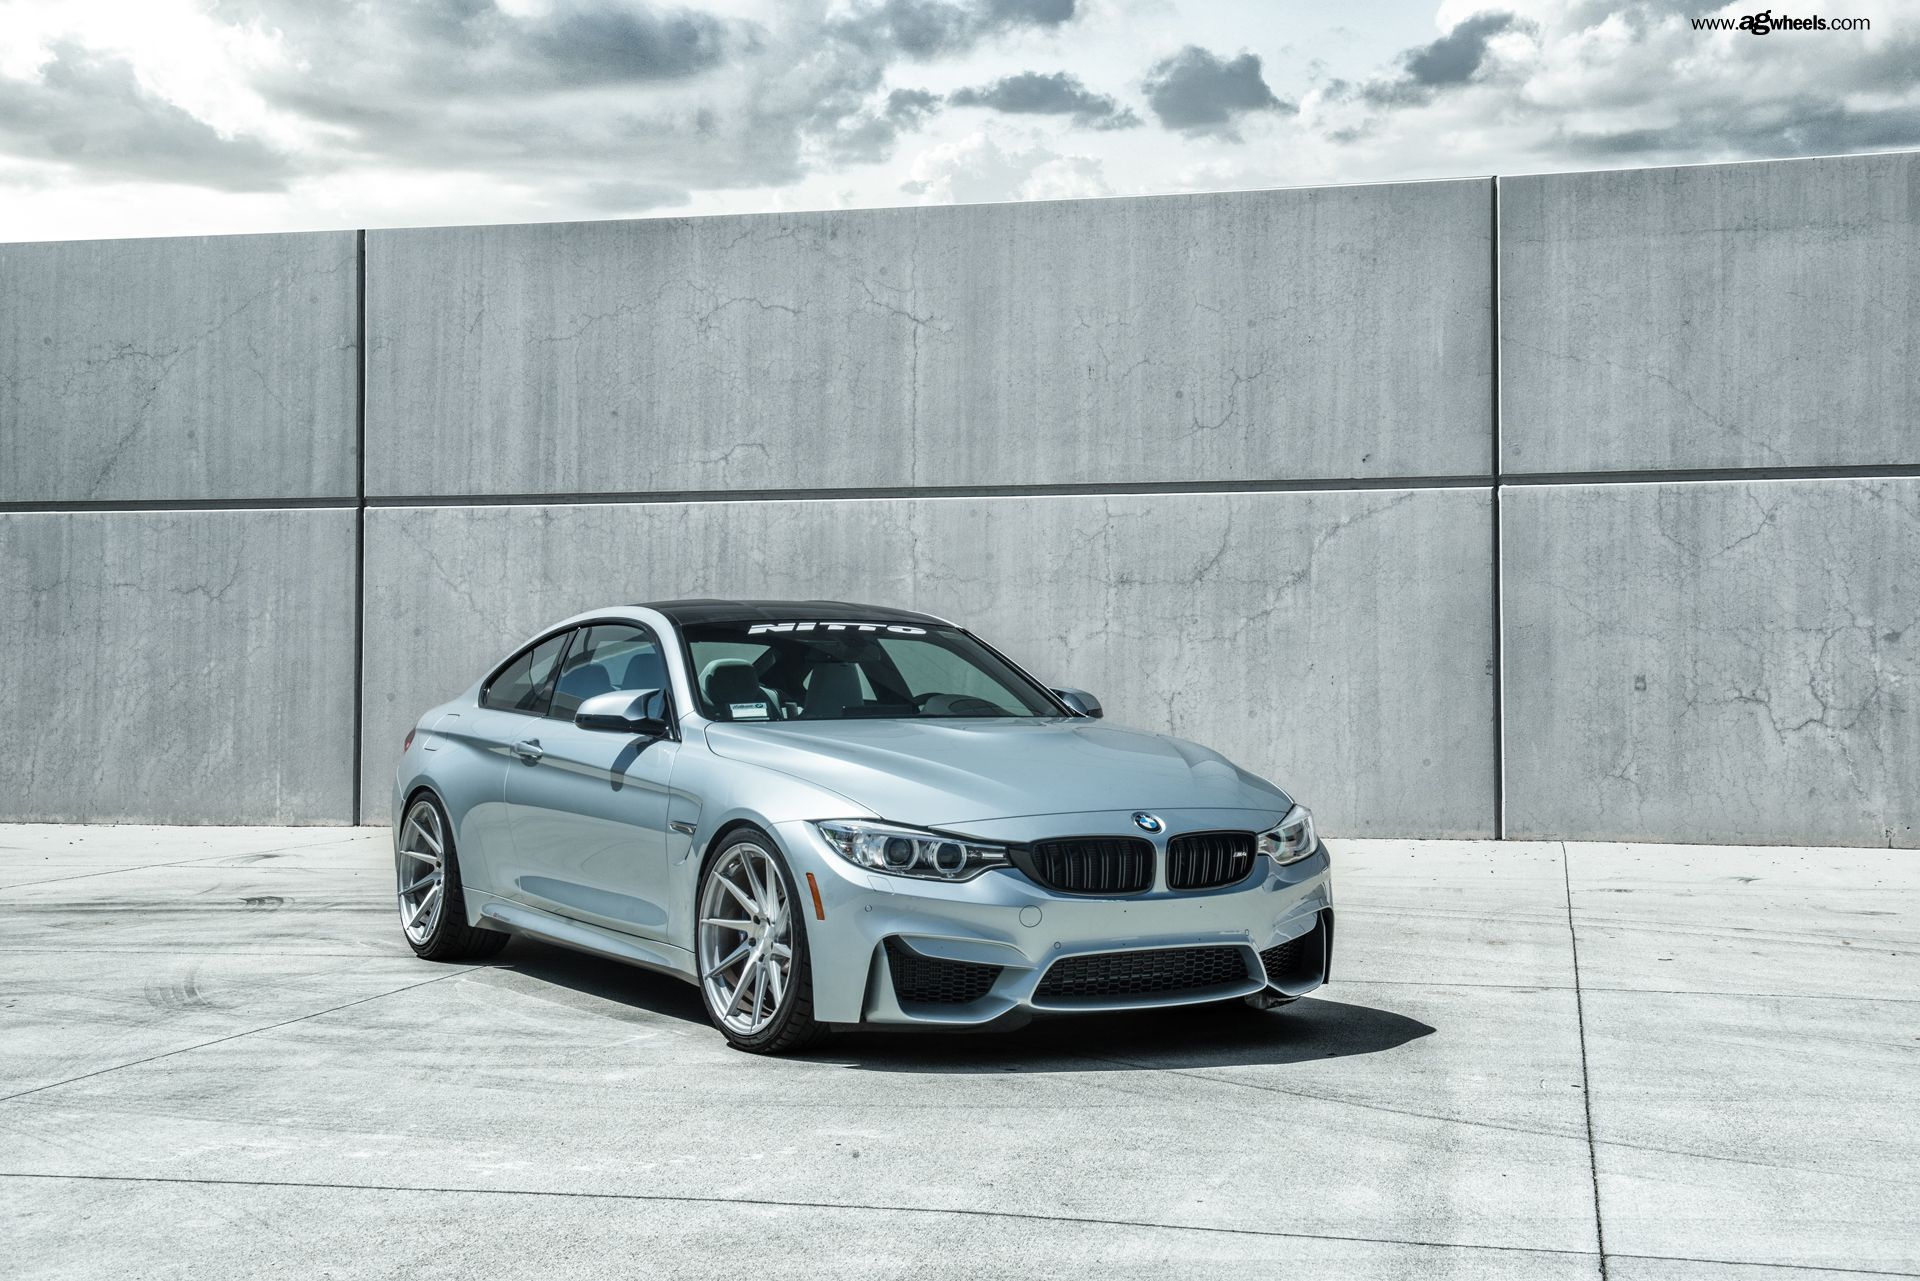 #BMW #F82 #M4 #Coupe #Provocative #Eyes #Silverstone #Tuning #Hot #Sexy #Burn #Strong #Live #Life #Love #Follow #Your #Heart #BMWLife